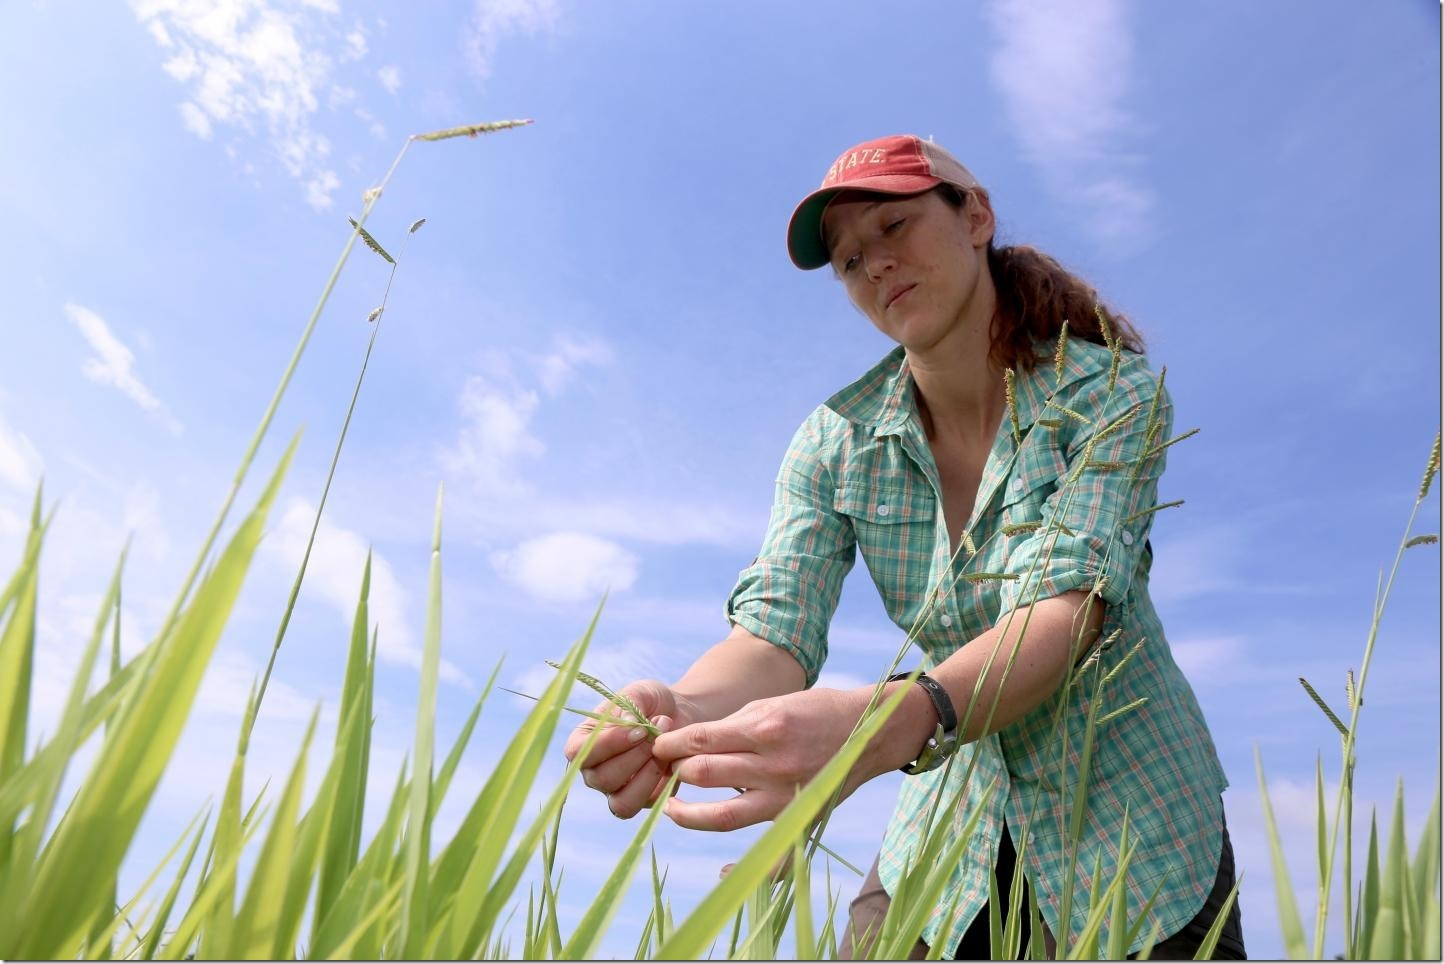 Study author Margaret Worthington examines Brachiaria grasses in an experimental field at the International Center for Tropical Agriculture near Cali, Colombia. Credit Paul Blake / International Center for Tropical Agriculture